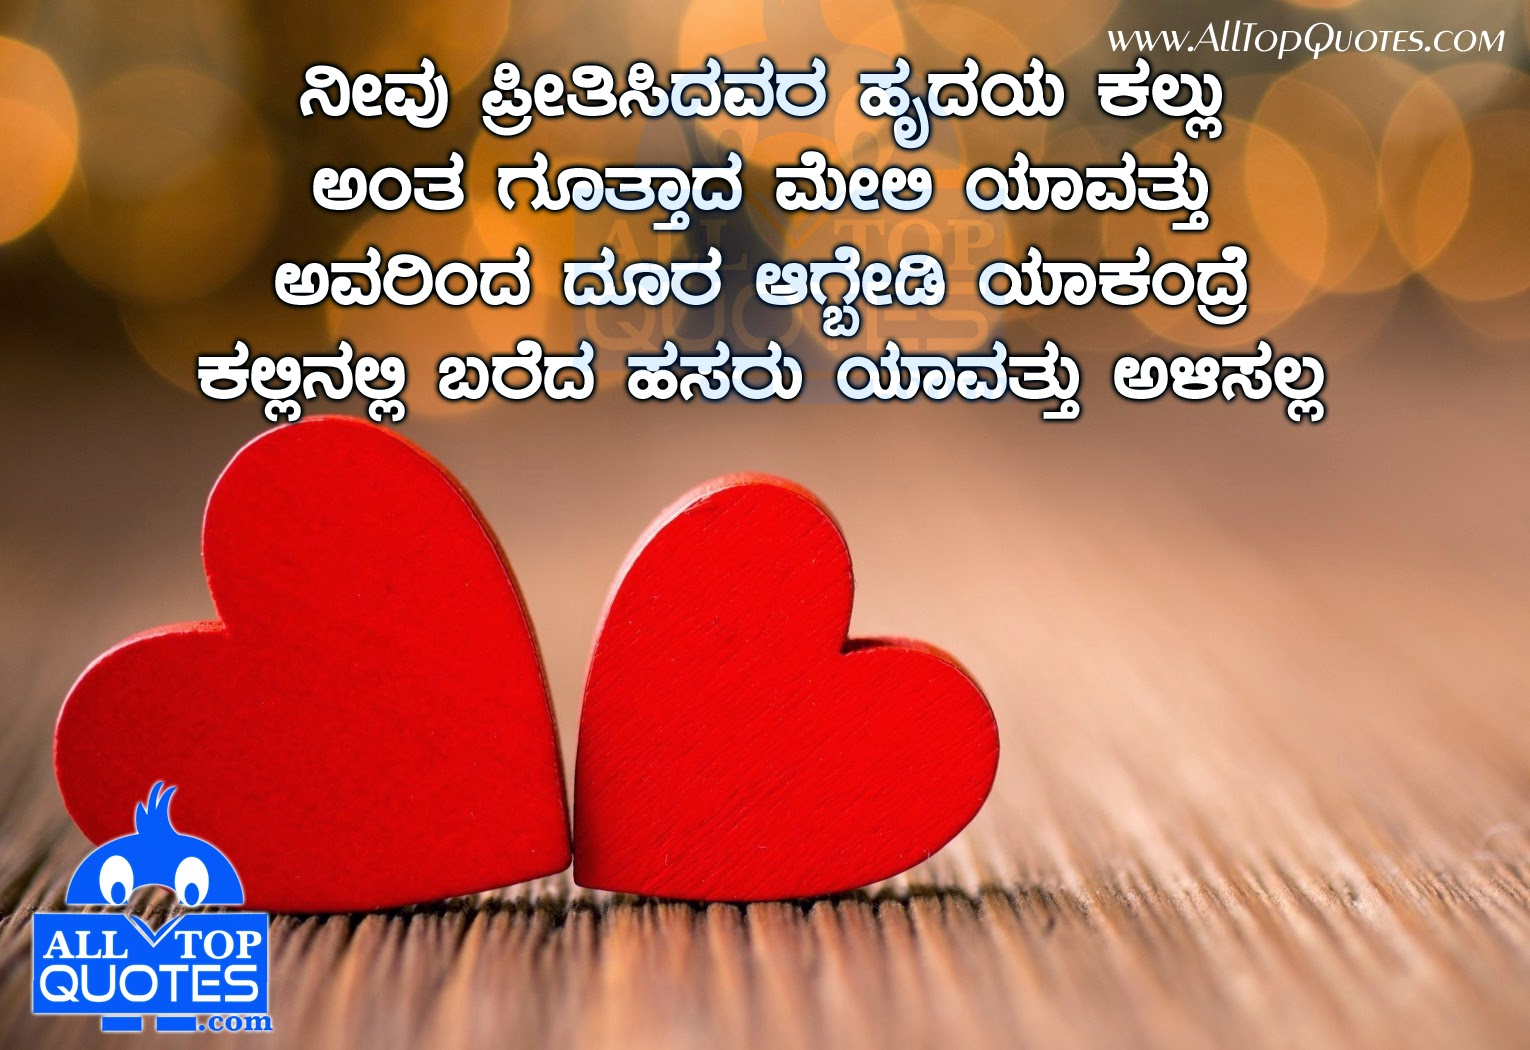 Sad Quotes In Kannada Gallery for gt love sad feelings kannada